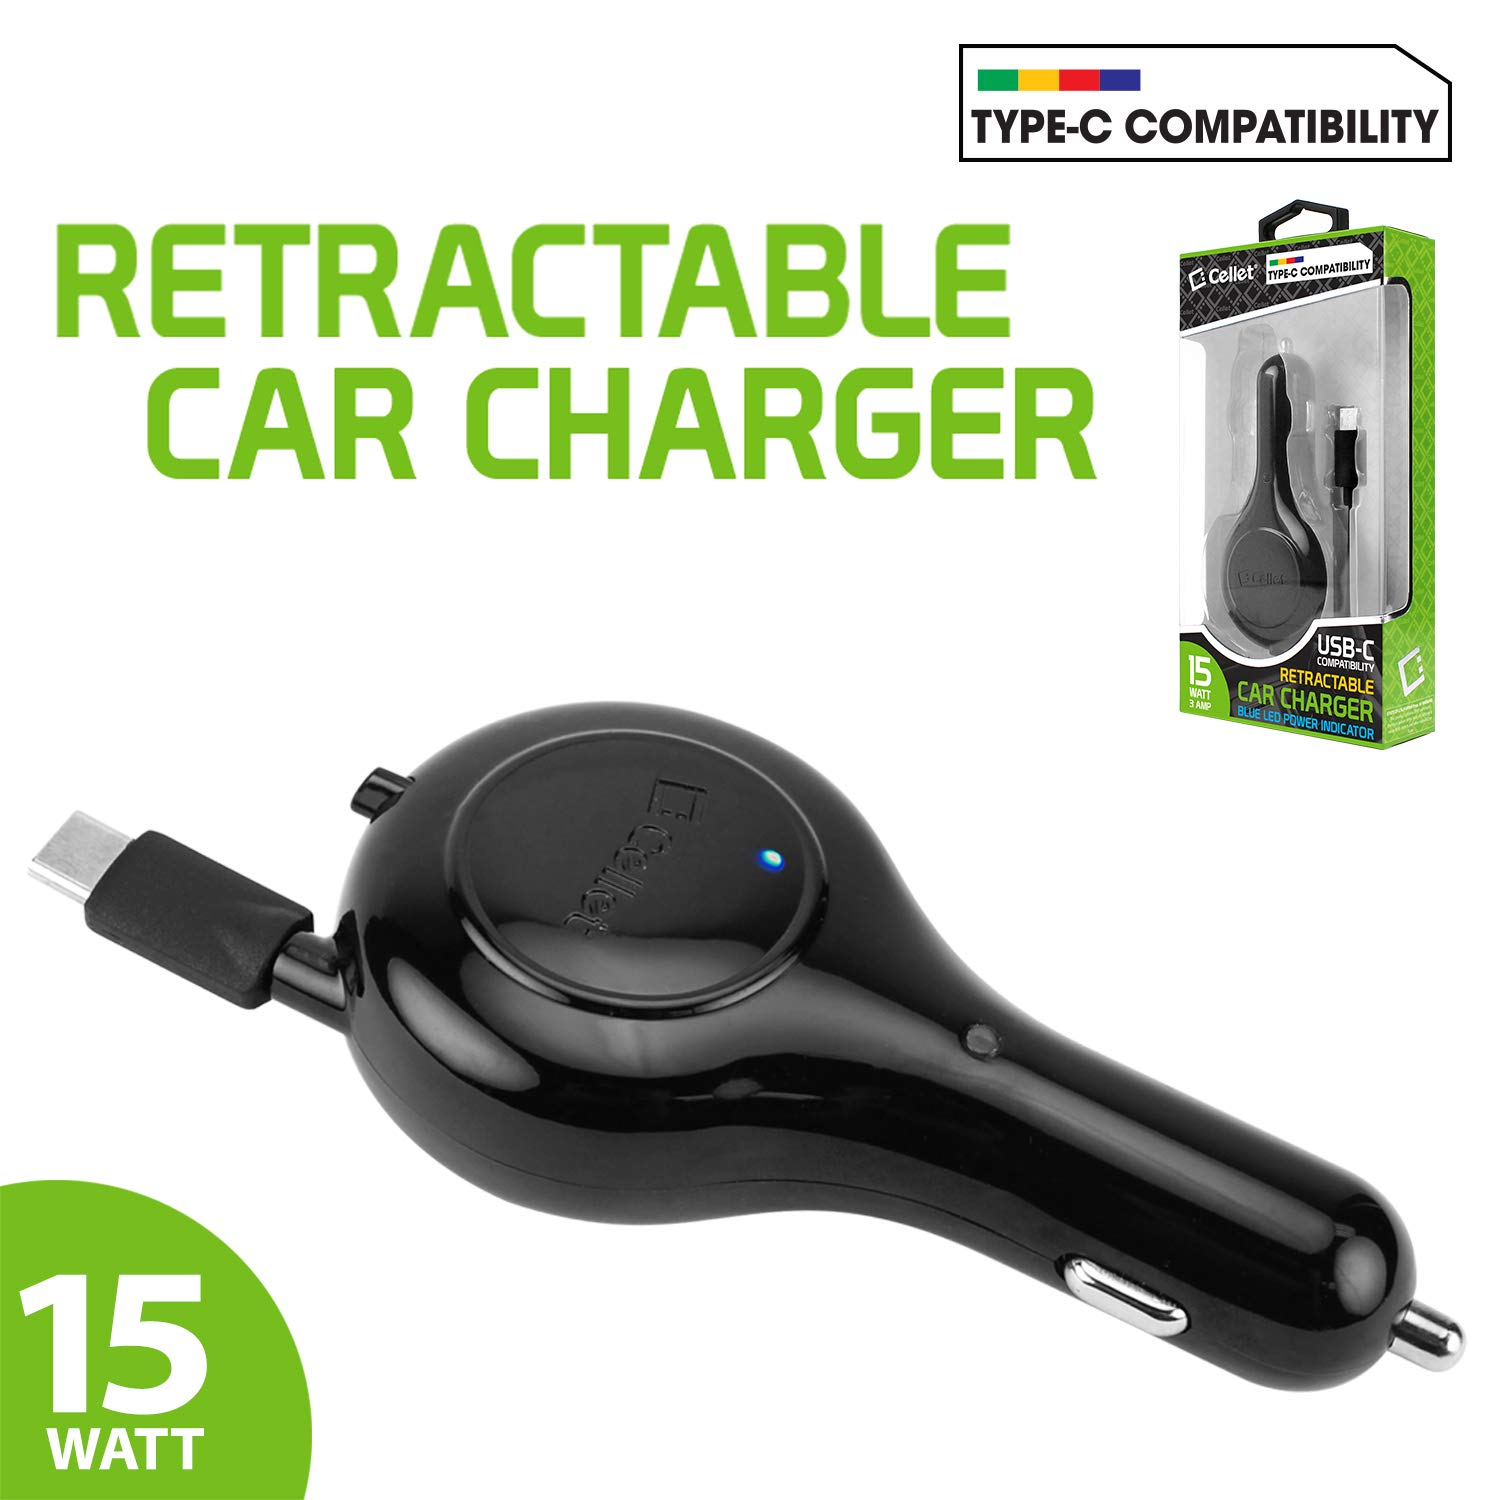 Blade Max 3// Max Blue Axon M Cellet 3Amp Fast Charging USB Type-C Retractable Car Vehicle Charger Compatible for ZTE Axon 7 Blade X,Blade X Max PUSBC30R/_WSTY4 Axon 7 Mini Blade Spark 15 Watt Blade V8 Pro